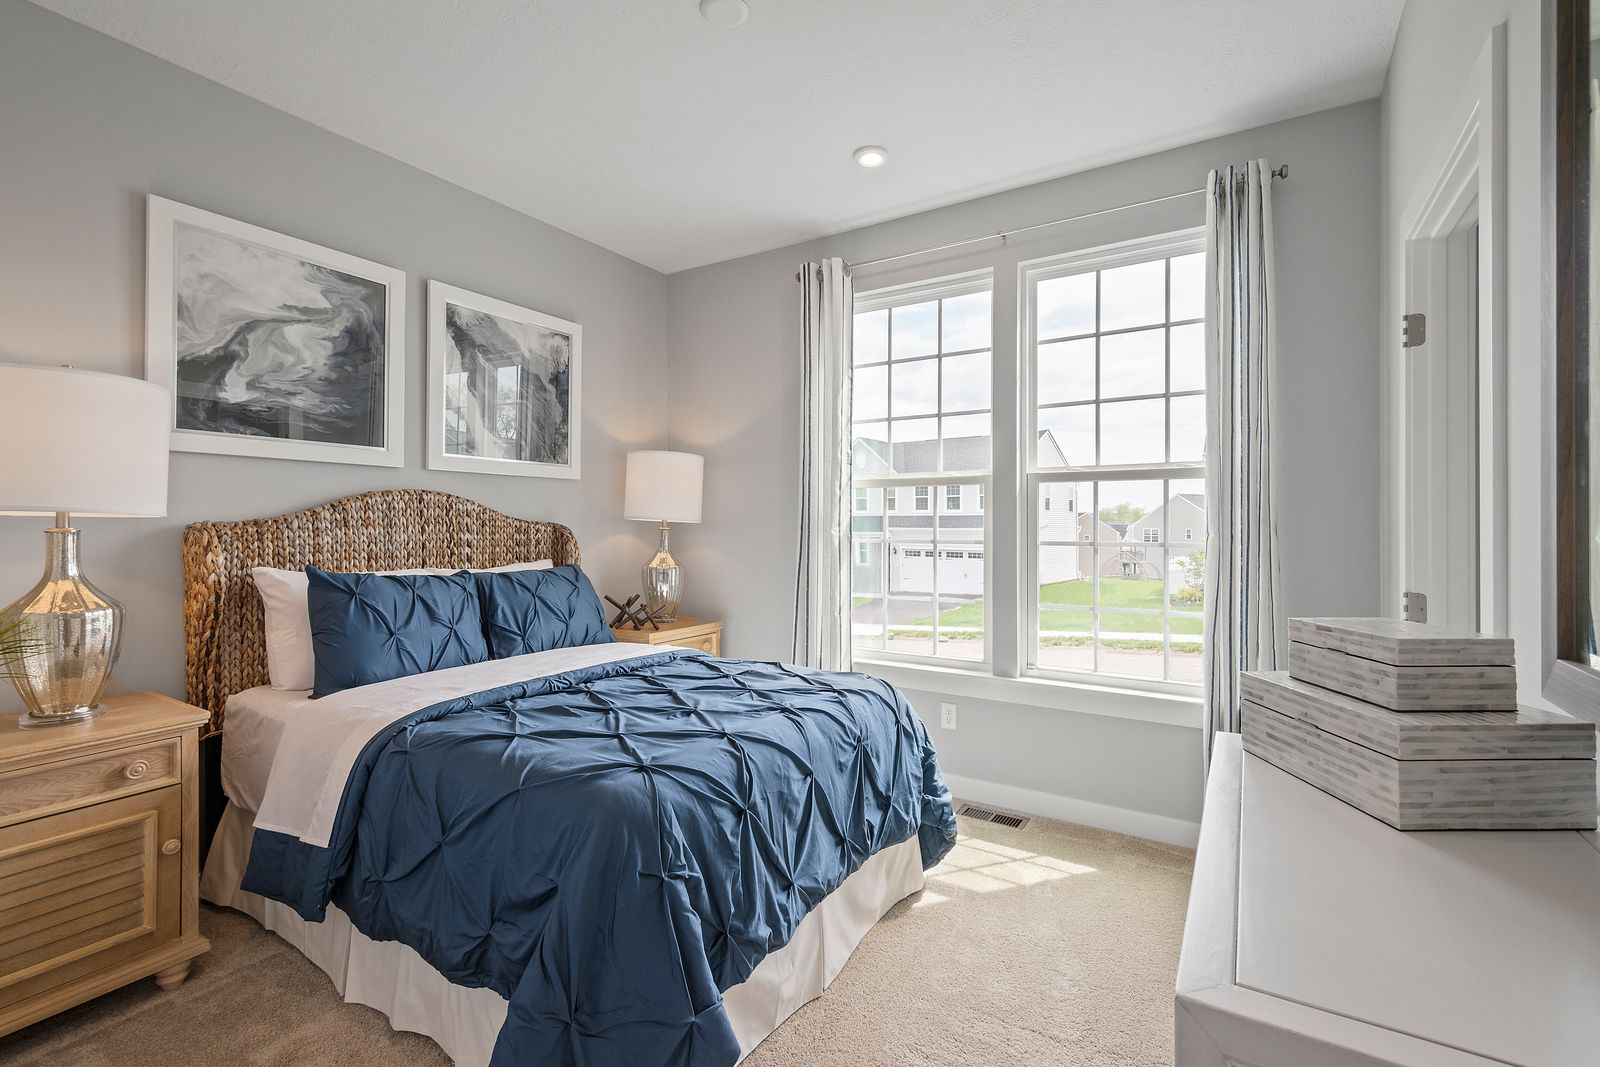 Bedroom featured in the Andover By Ryan Homes in Nashville, TN